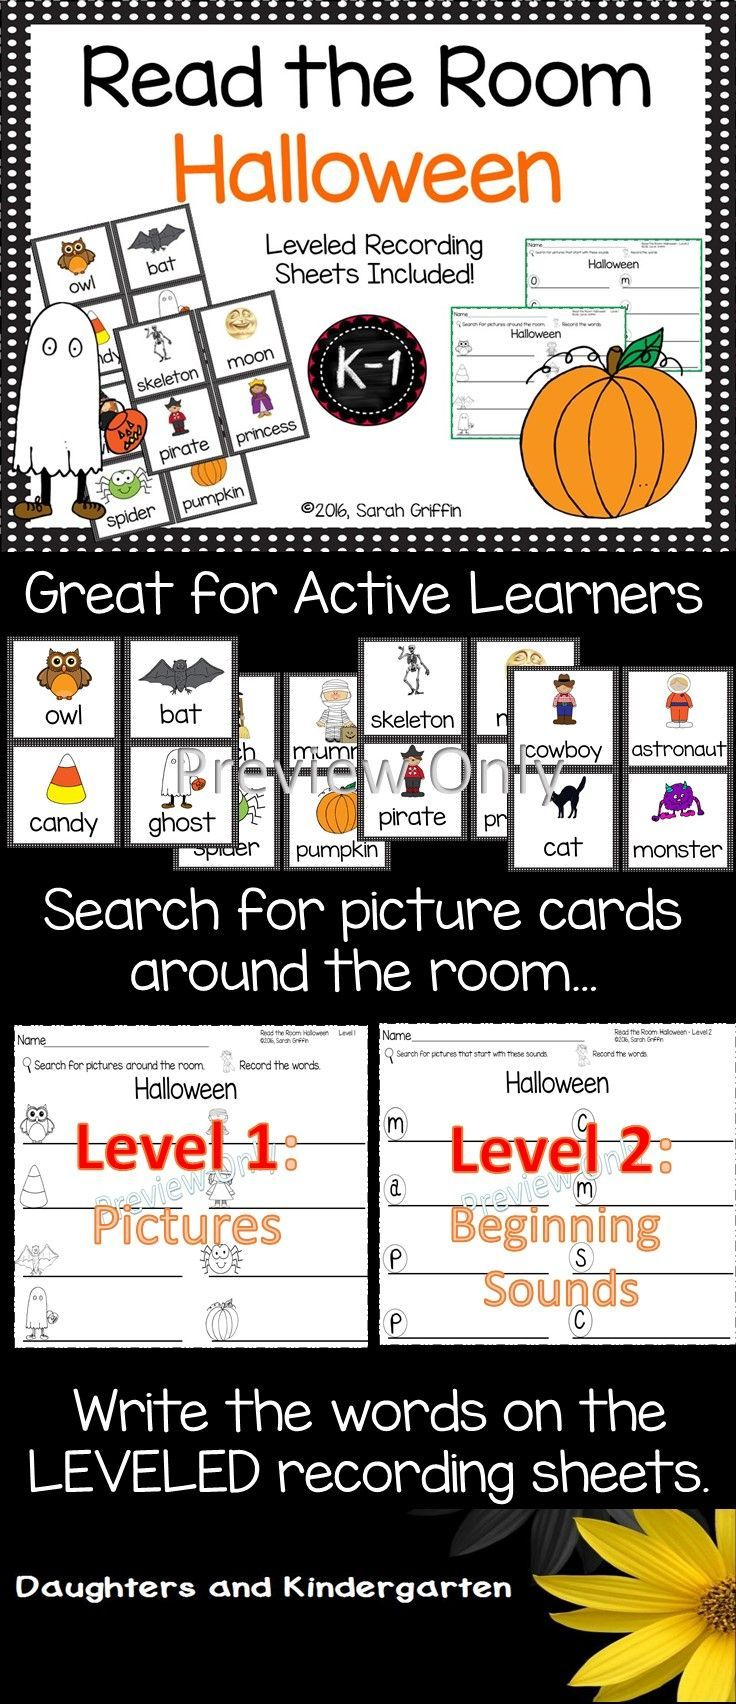 An interactive, reading and writing center for Halloween. PreK, Kindergarten, and 1st grade students read and write the room, recording the Halloween words (witch, bat, candy, ghost, pumpkin, spider, mummy, owl, moon, skeleton, pirate, princess, cowboy, astronaut, cat, and monster).   Sarah Griffin, Daughters and Kindergarten https://www.teacherspayteachers.com/Product/Read-the-Room-Halloween-2085511